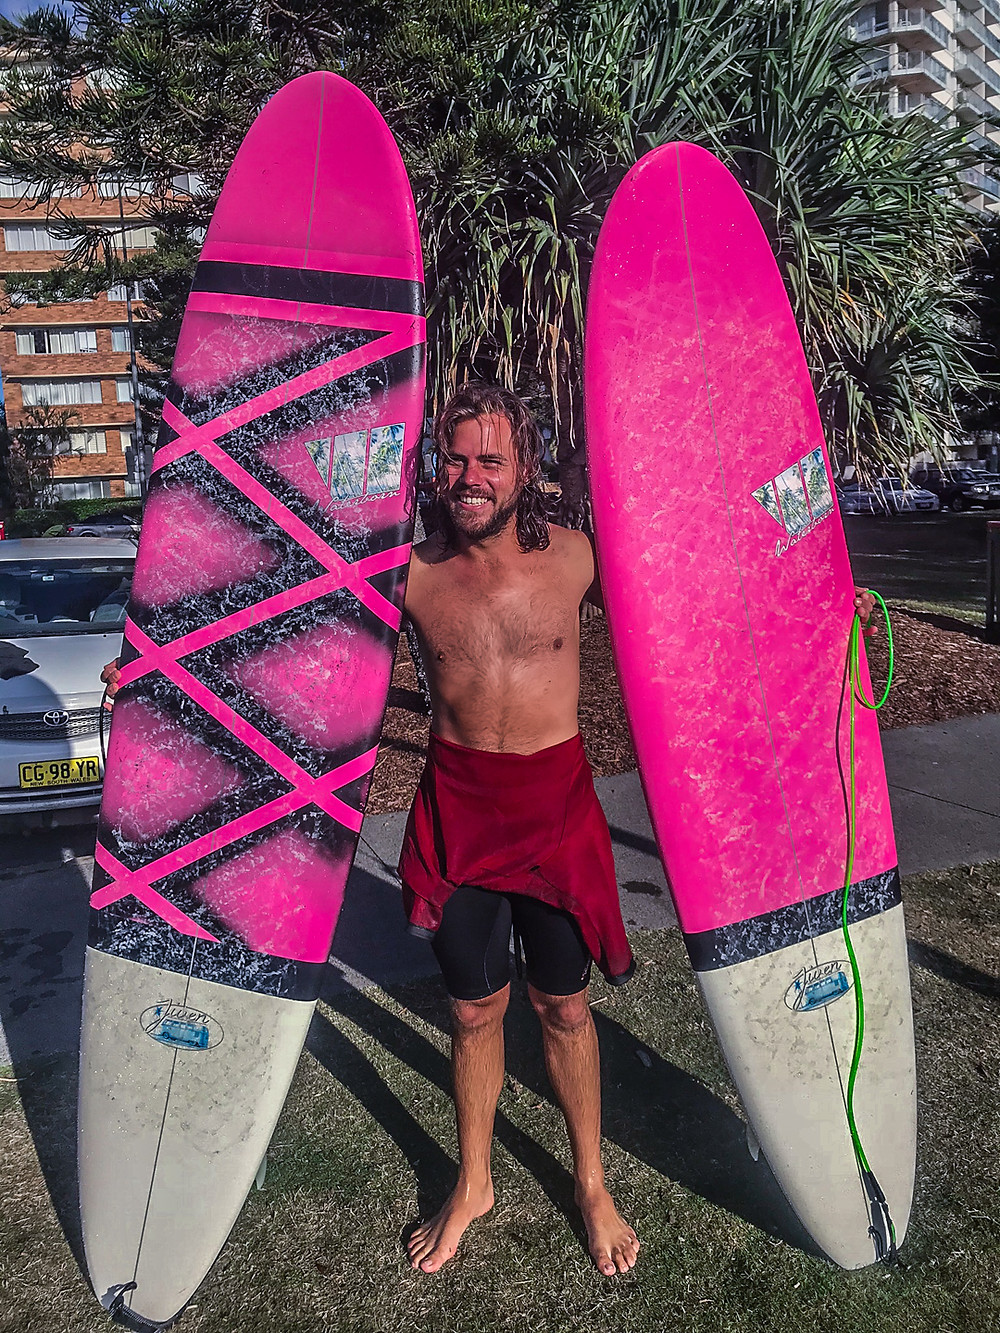 Pink surfboards, small wave killers, pipeline